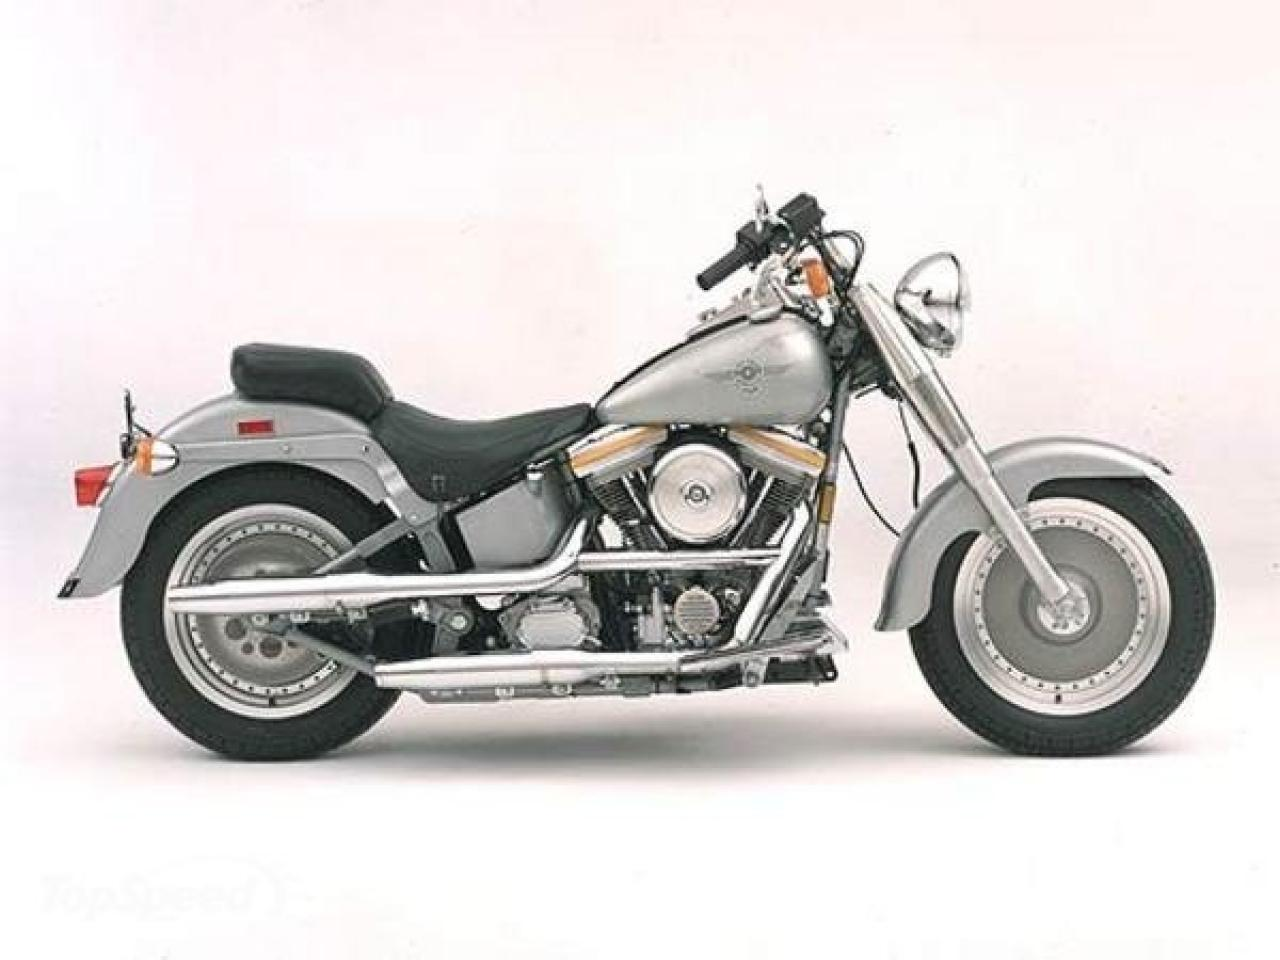 2008 harley davidson flstf softail fat boy moto. Black Bedroom Furniture Sets. Home Design Ideas